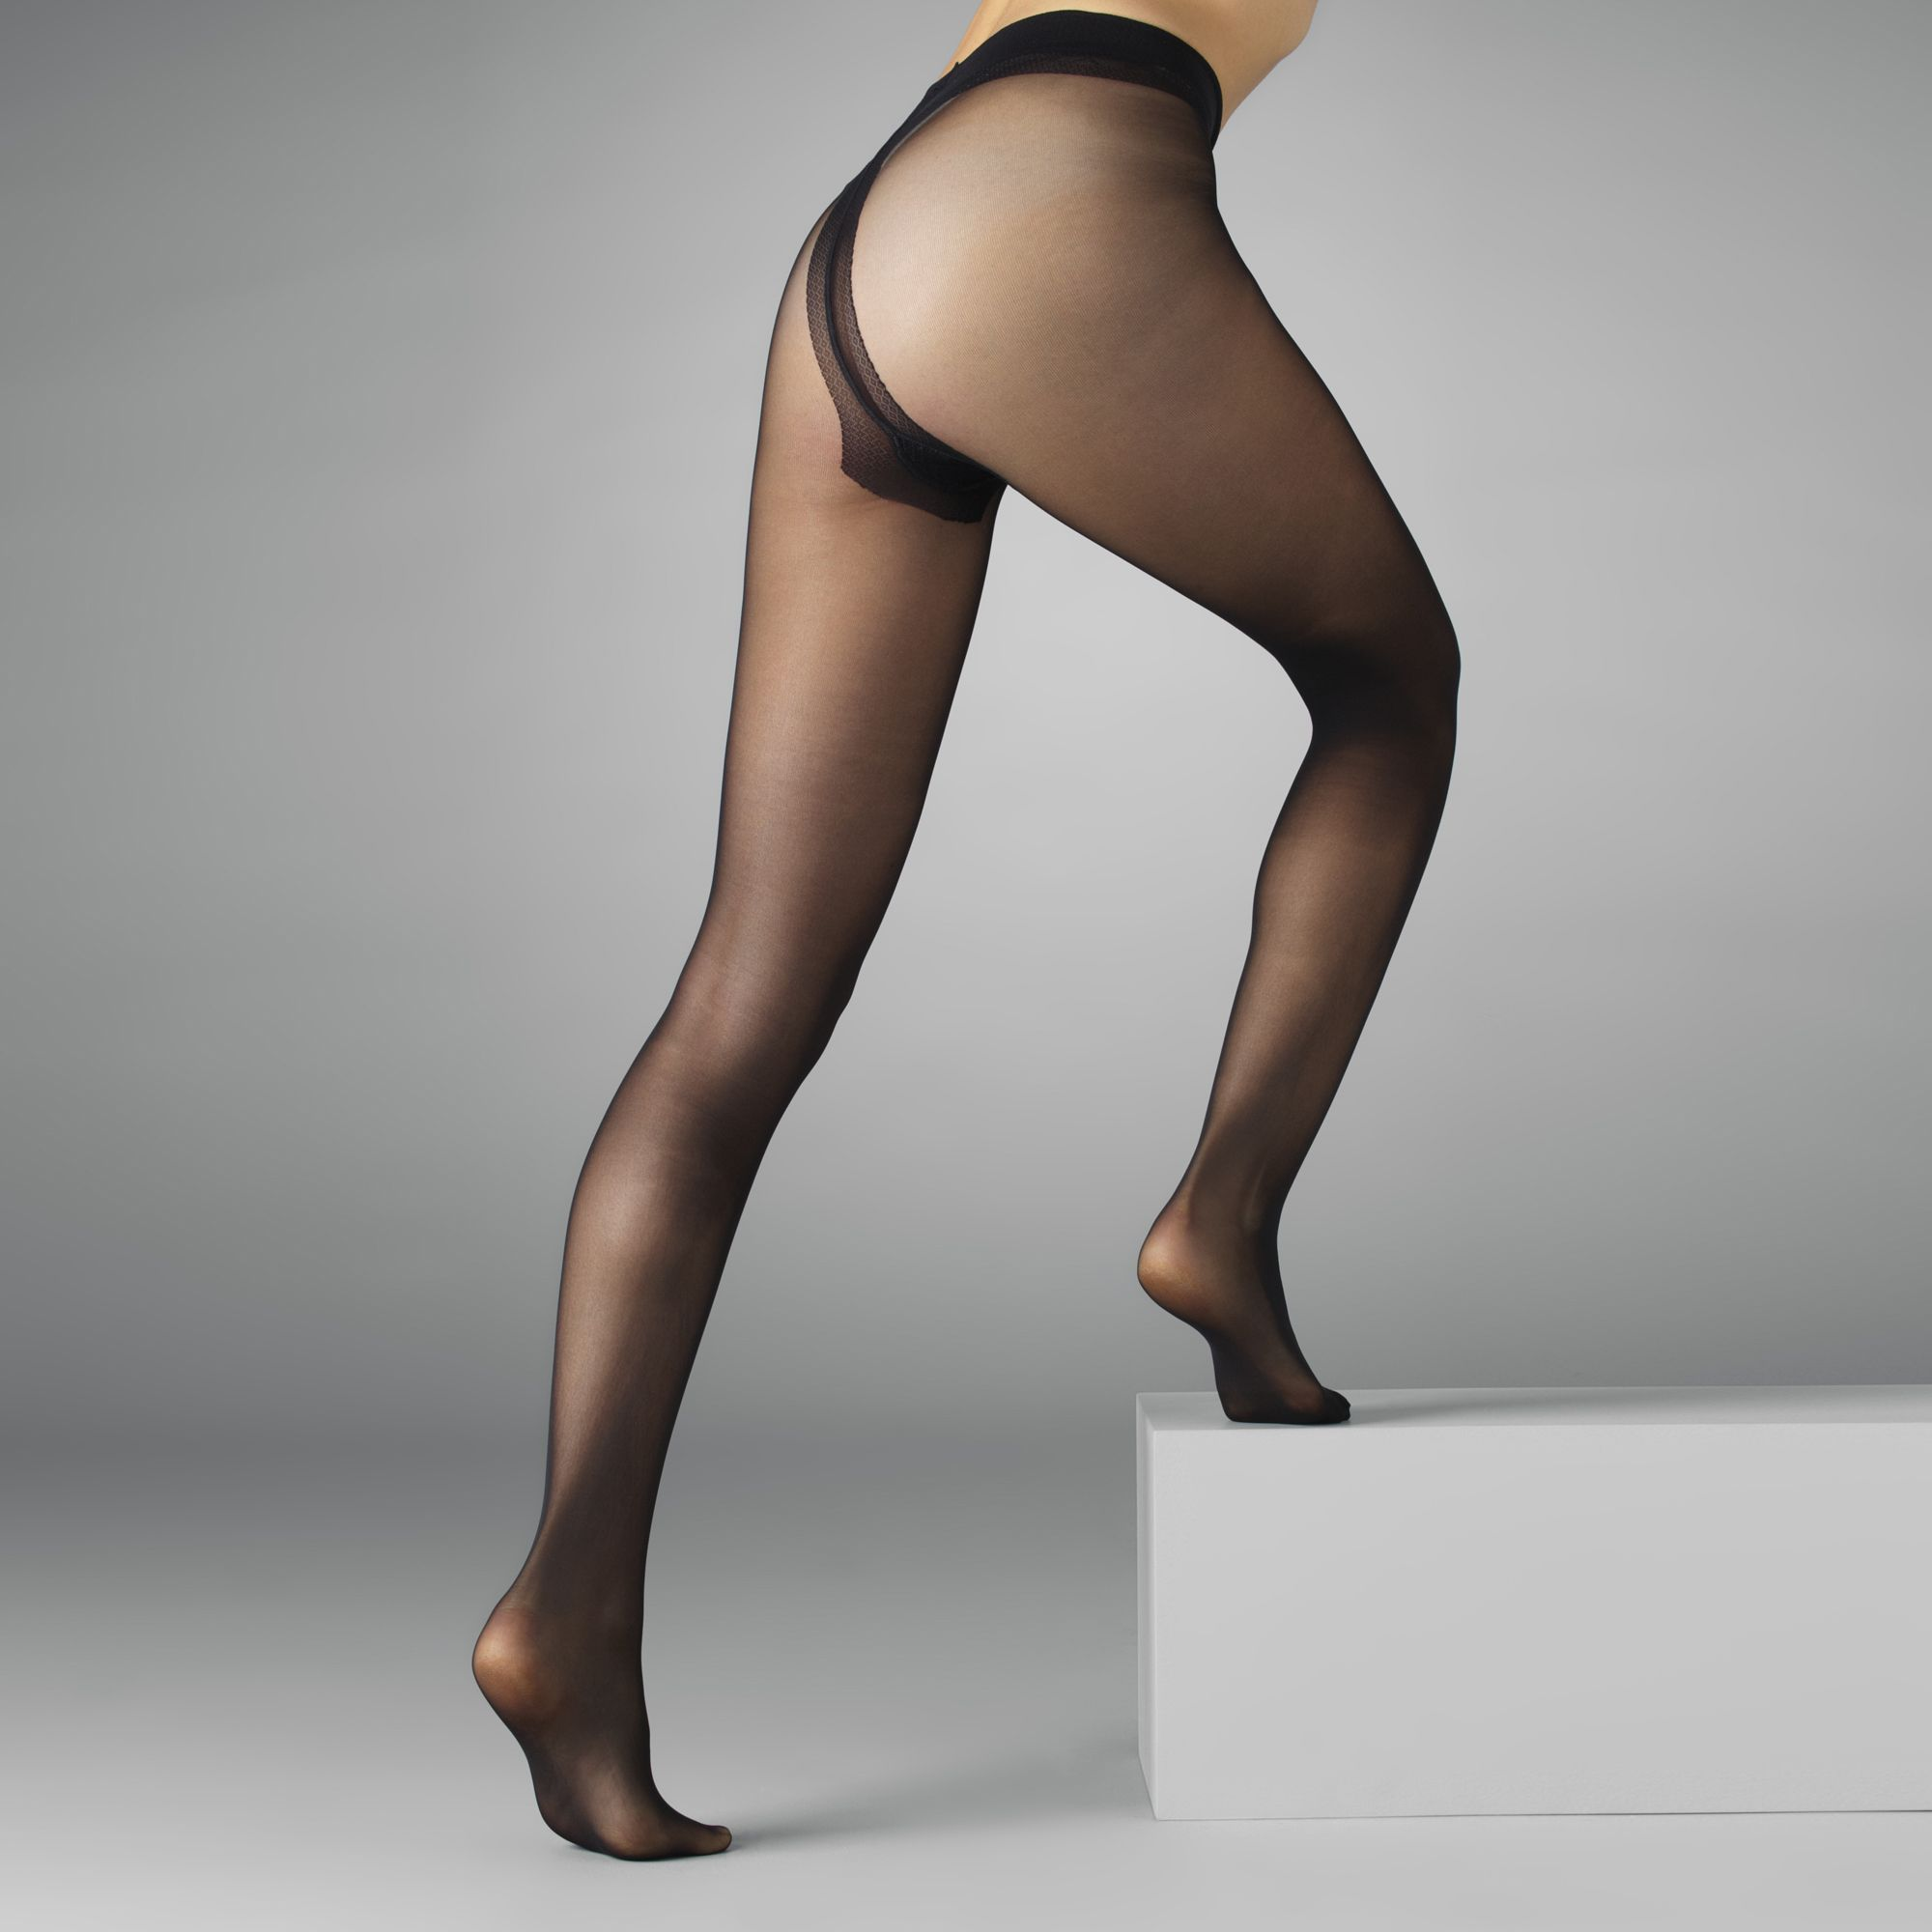 Will not wolford pantyhose photo share your